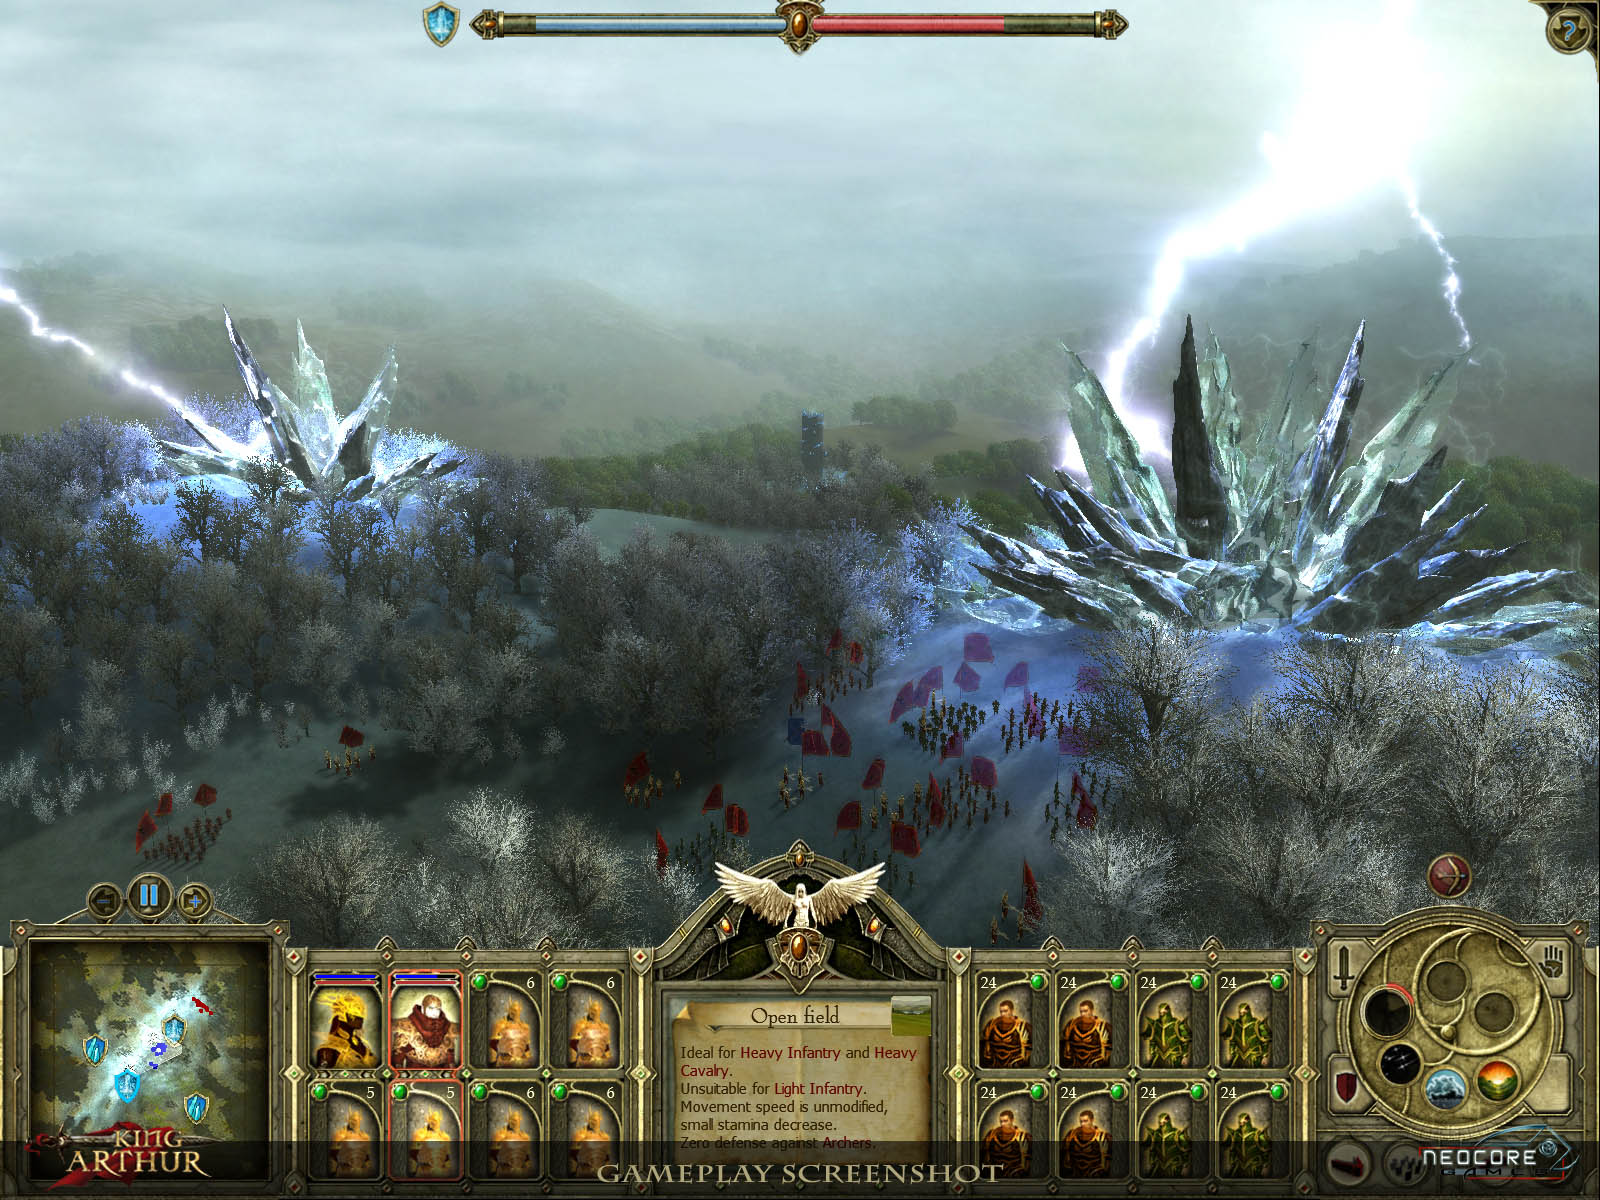 King Arthur: Legendary Artifacts DLC screenshot